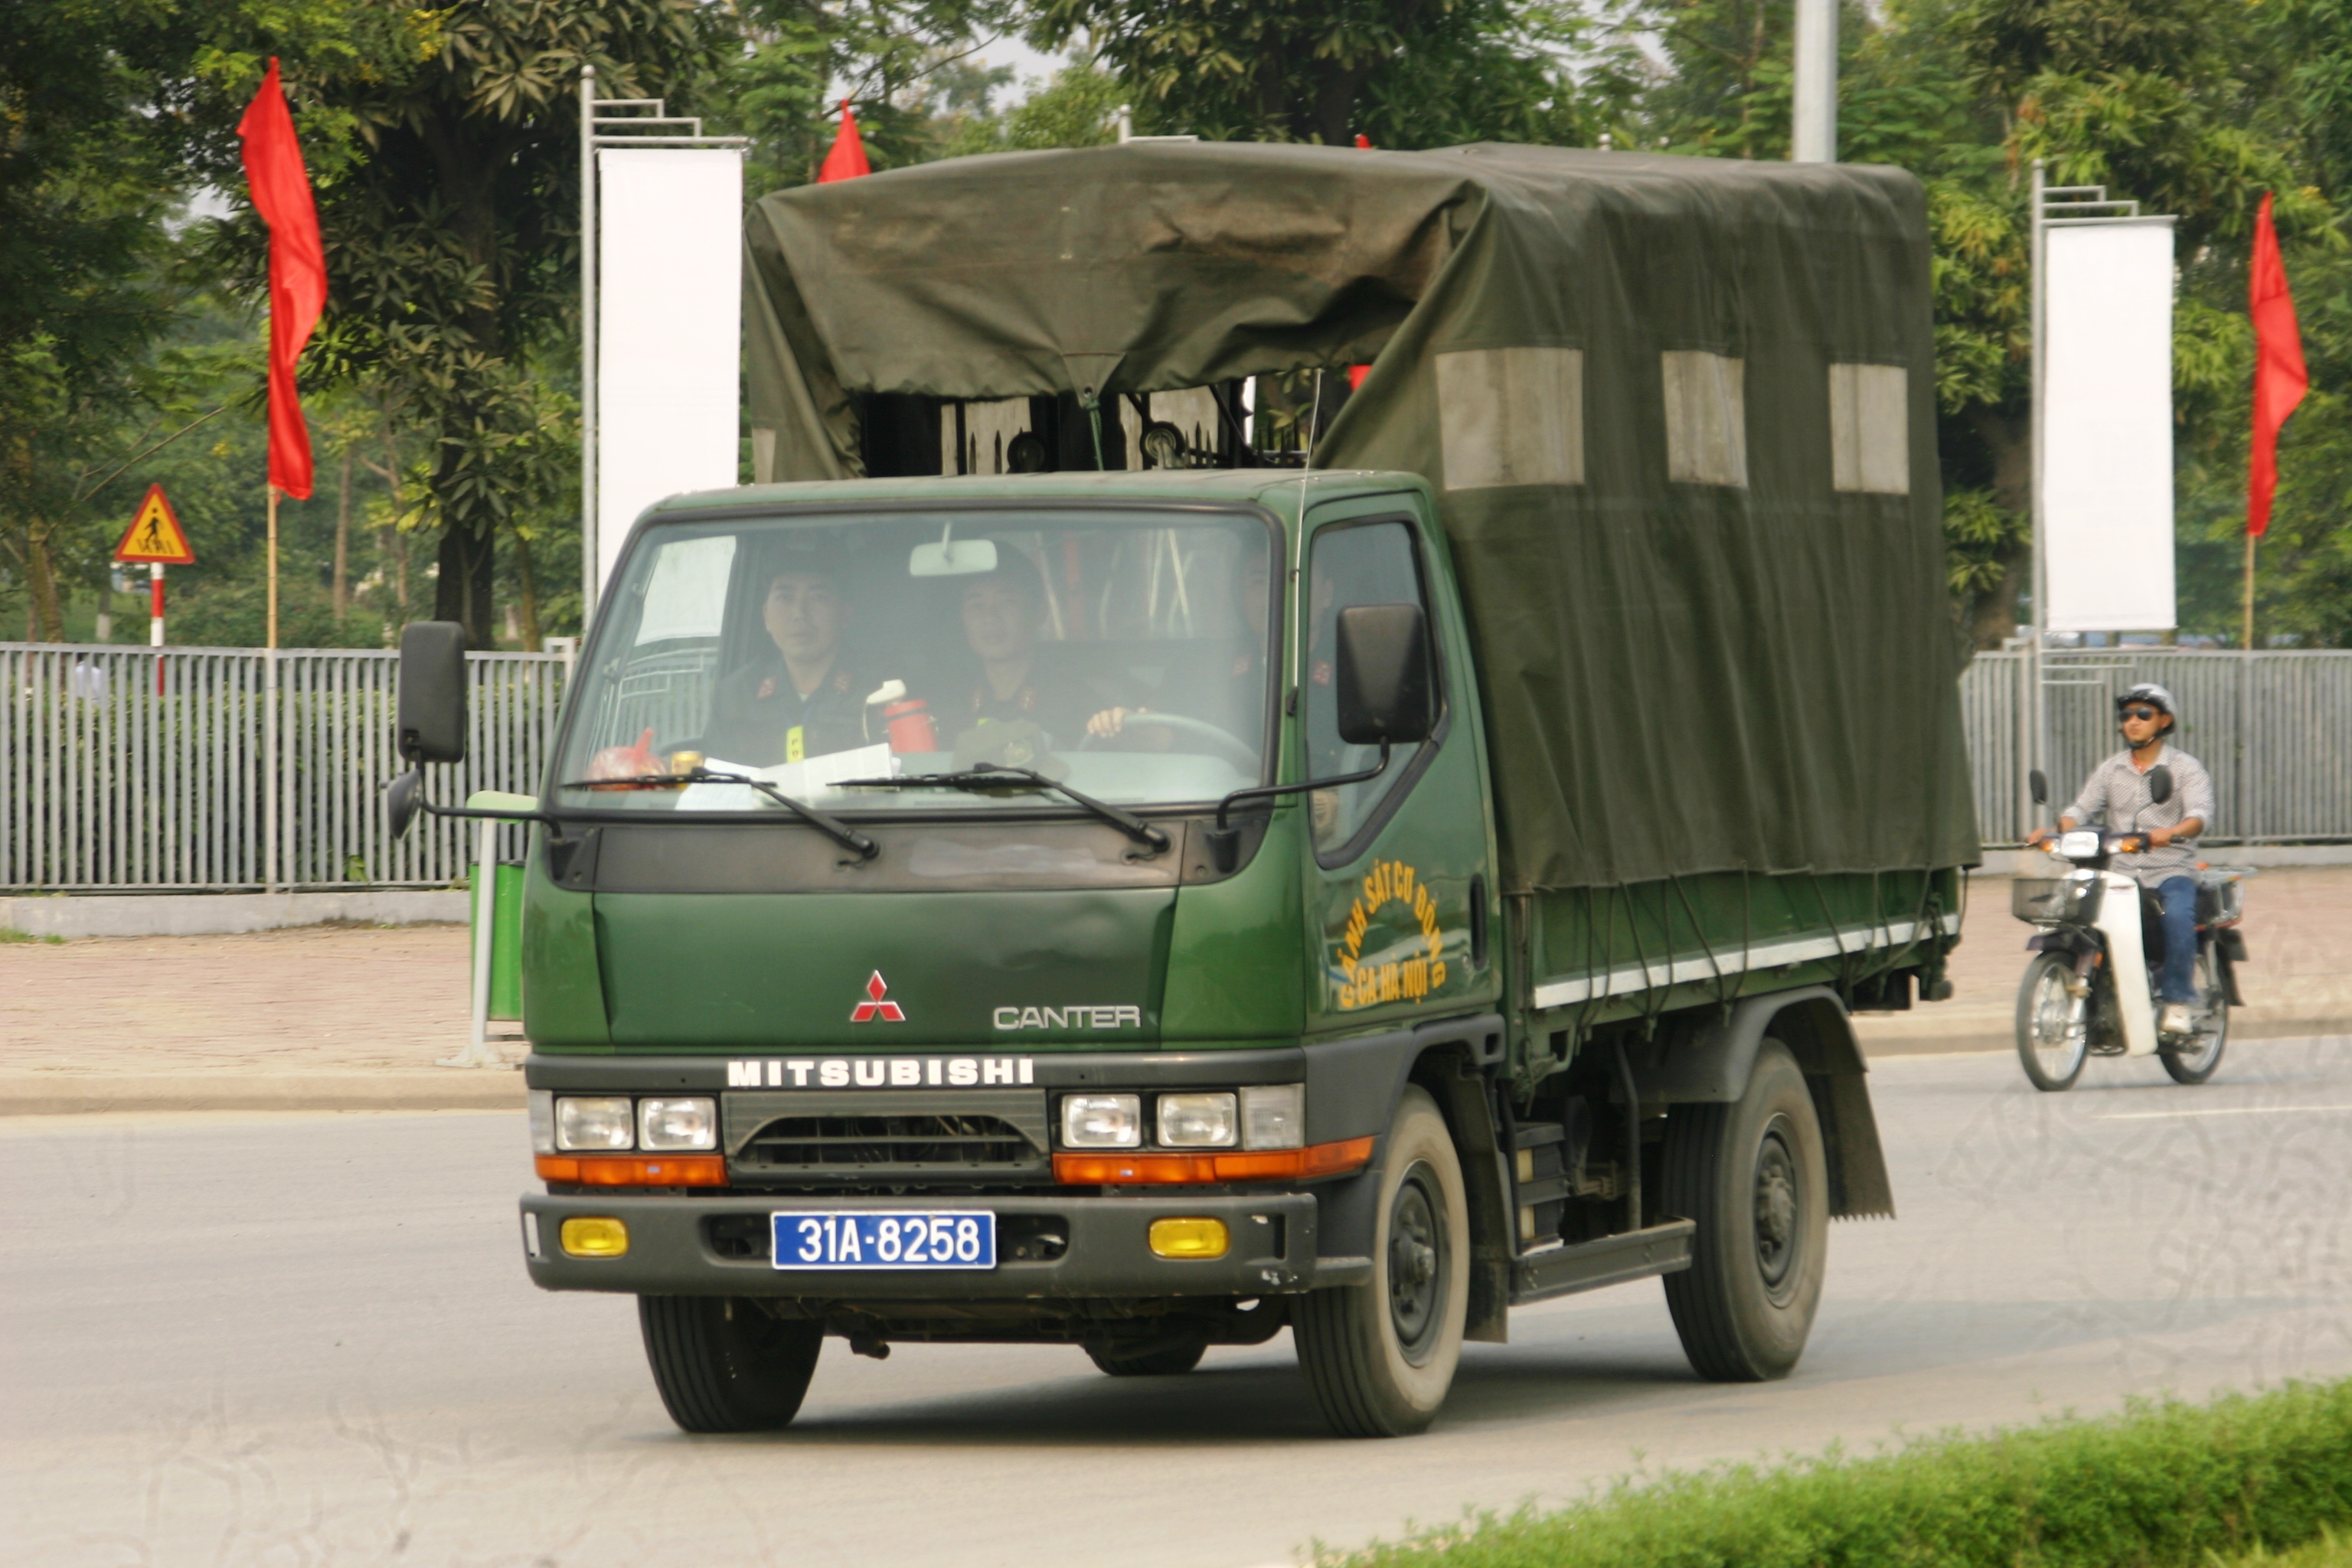 Mitsubishi Canter '31A-8258' - Vietnam Police | Flickr - Photo ...